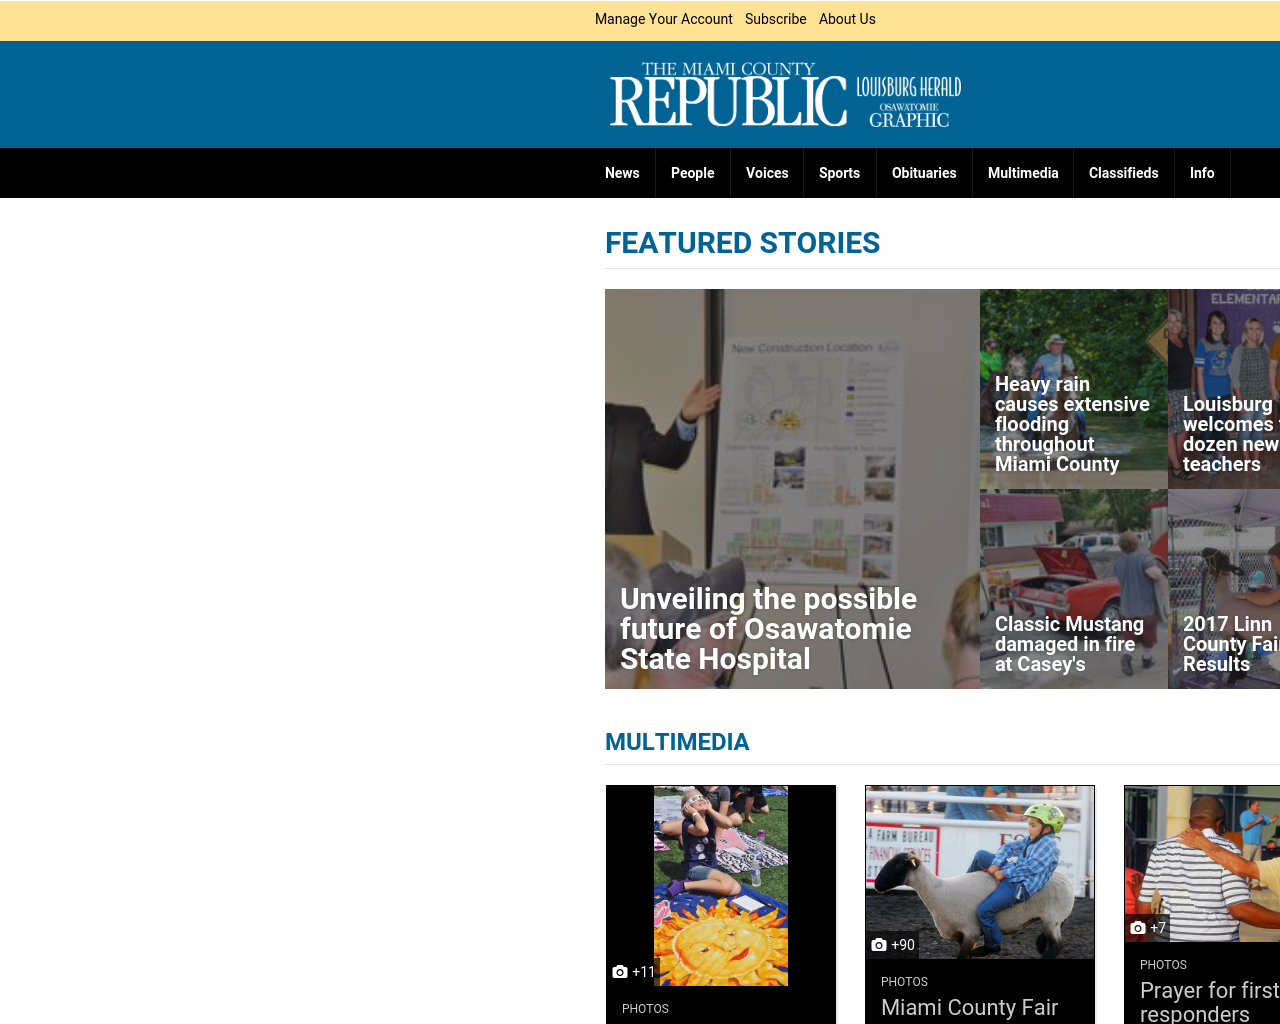 The-Miami-County-Republic-Advertising-Reviews-Pricing